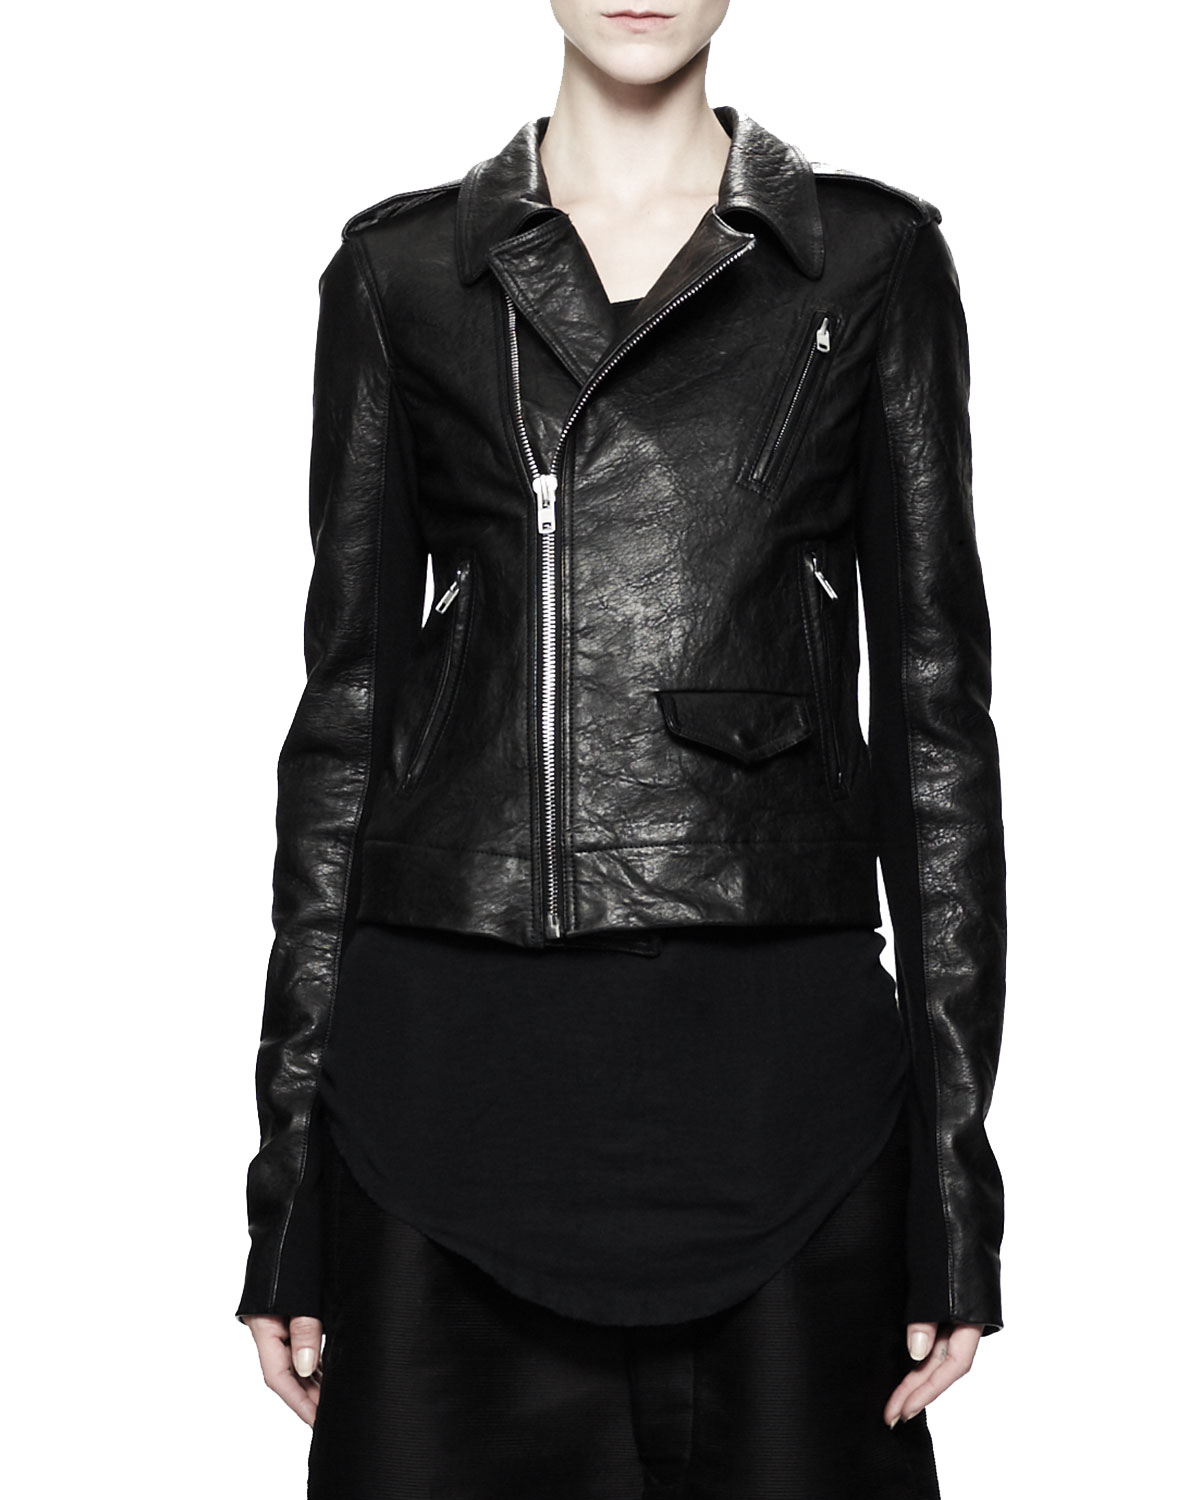 Rick Owens Stooges Multizip Leather Jacket Black in Black | Lyst